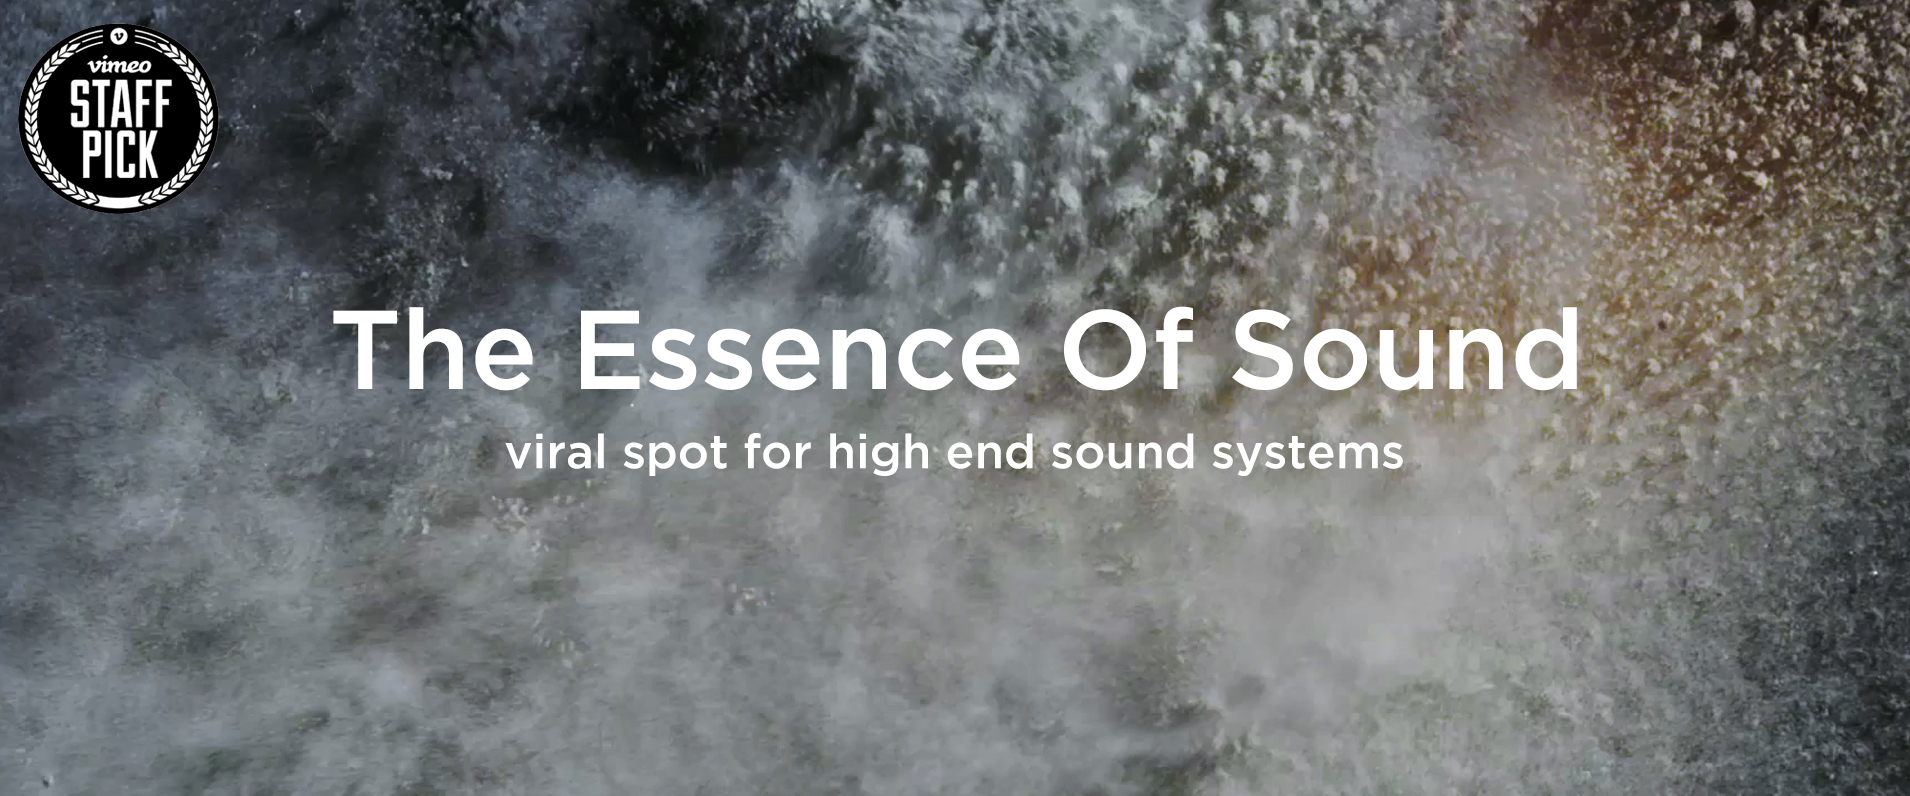 THE_ESSENCE_OF_SOUND